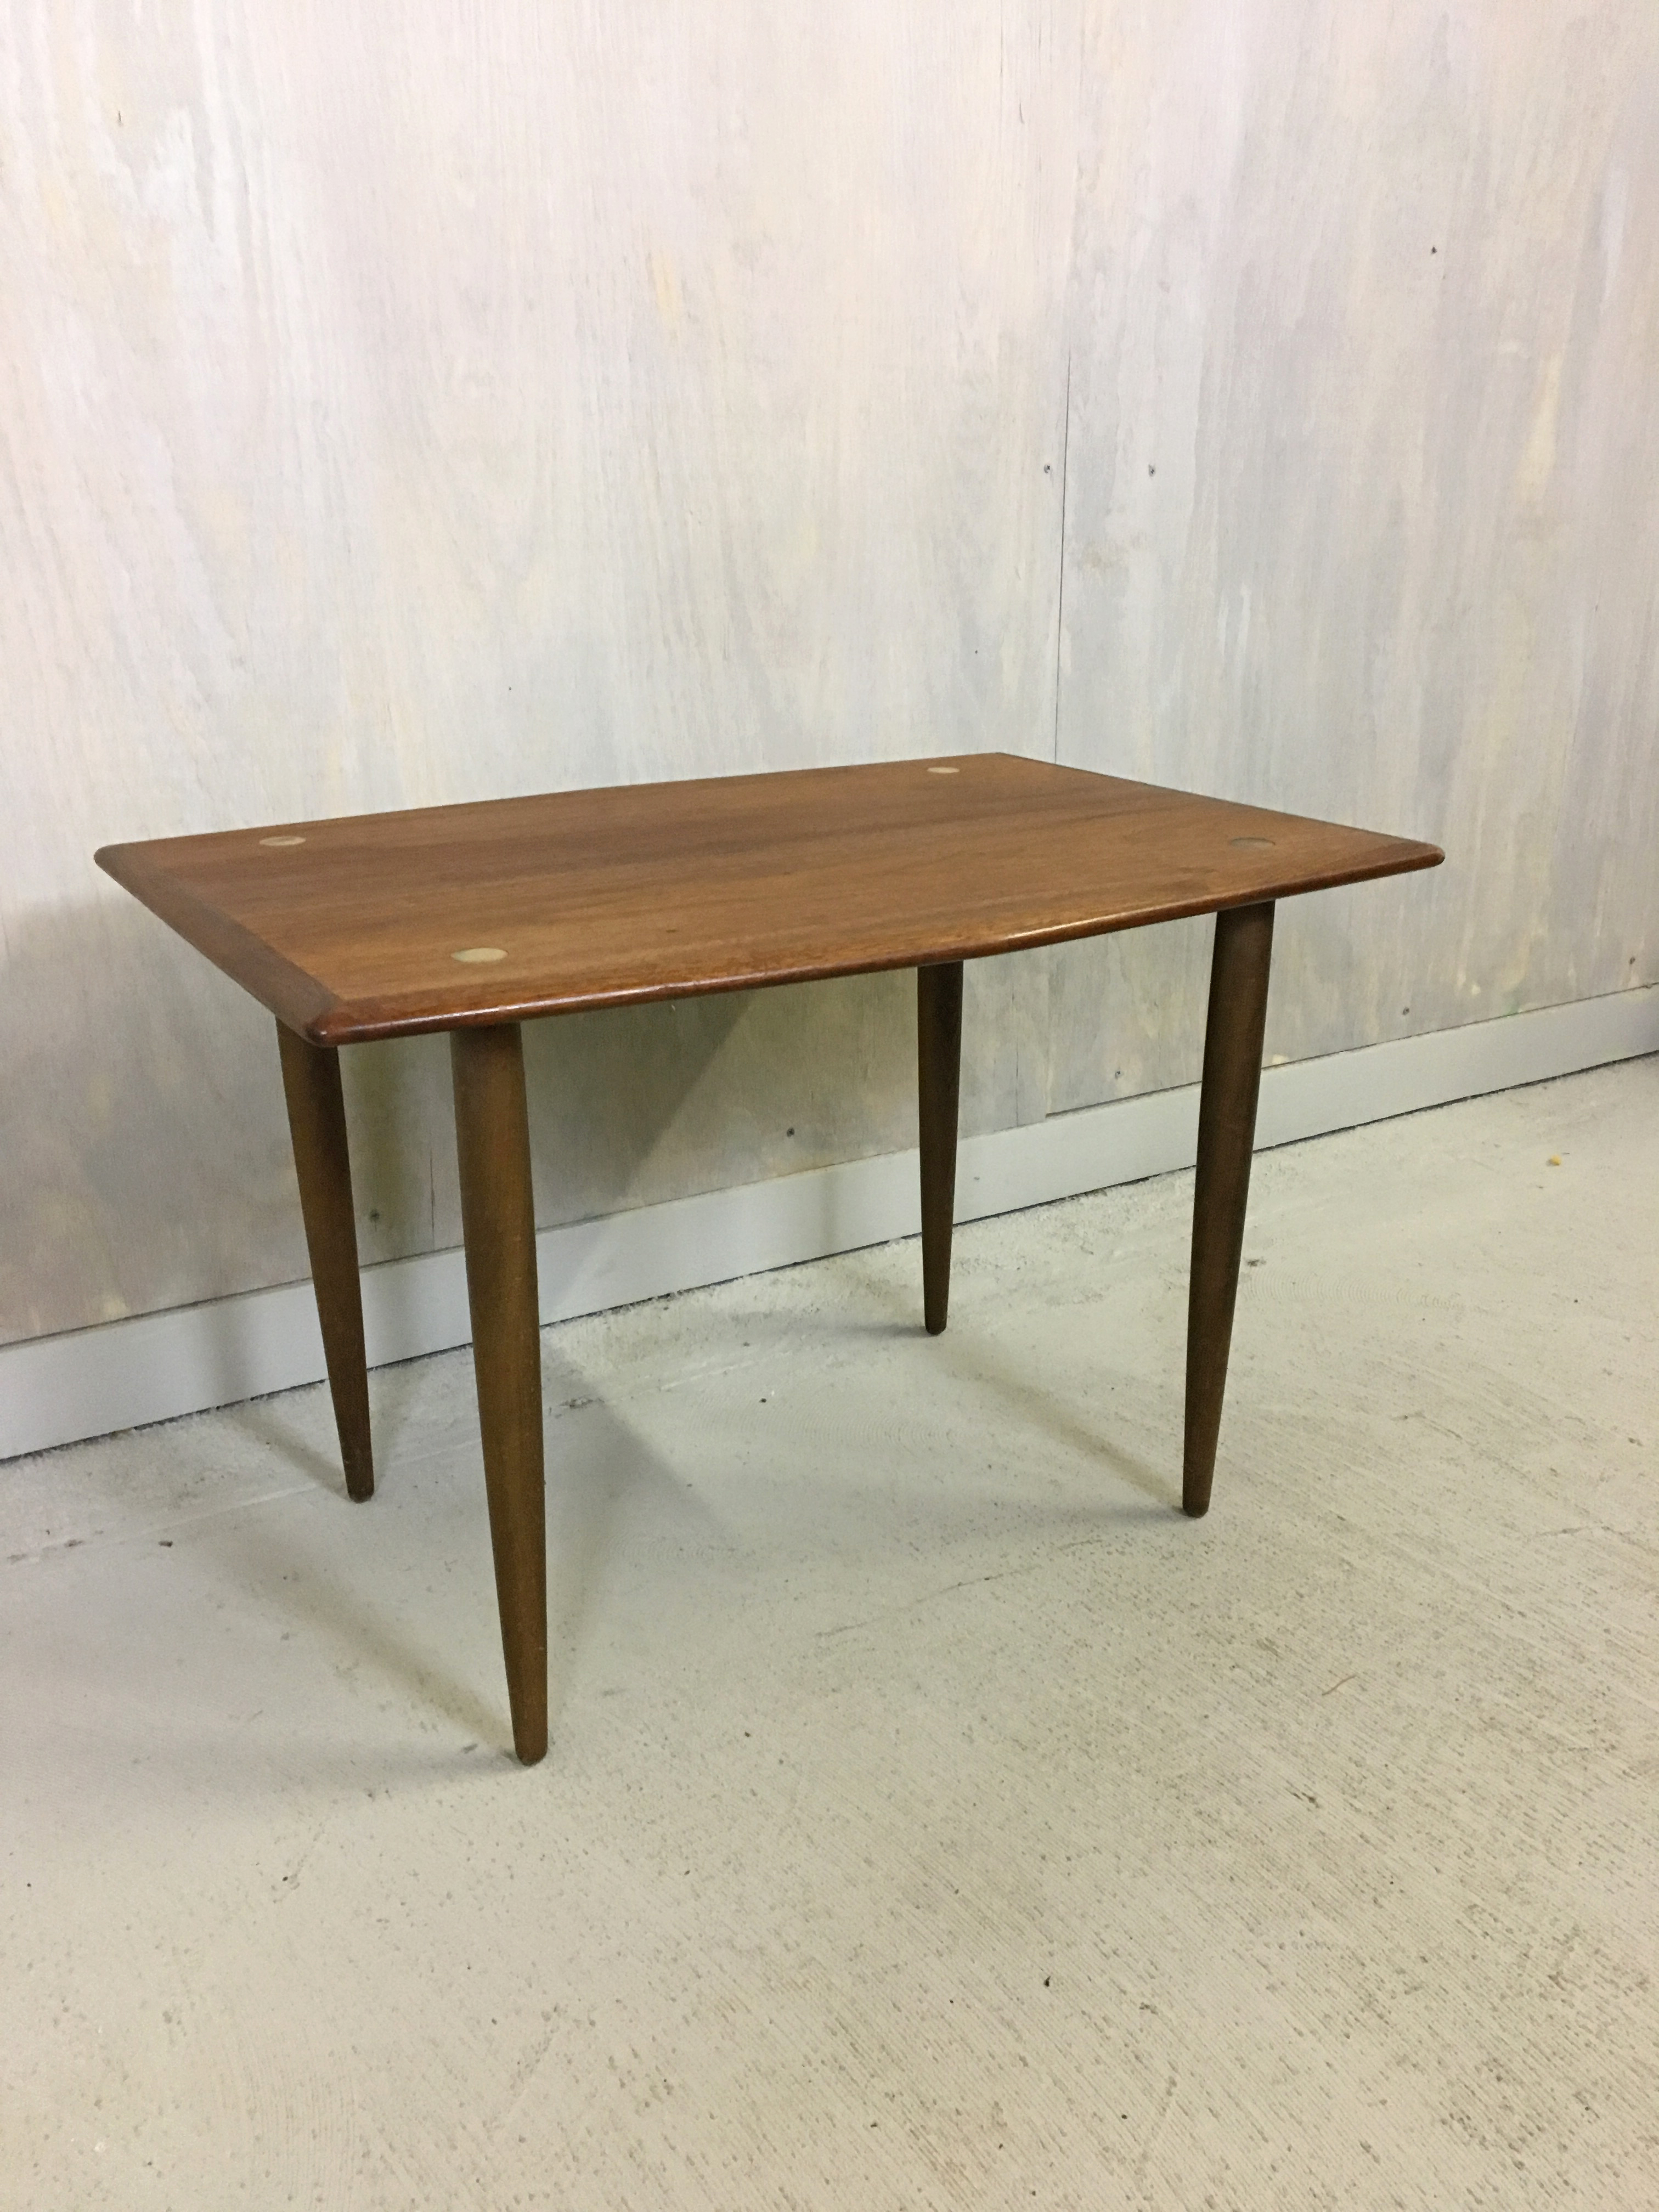 SALE - Dux of Sweden Teak Side Table with Brass Accents